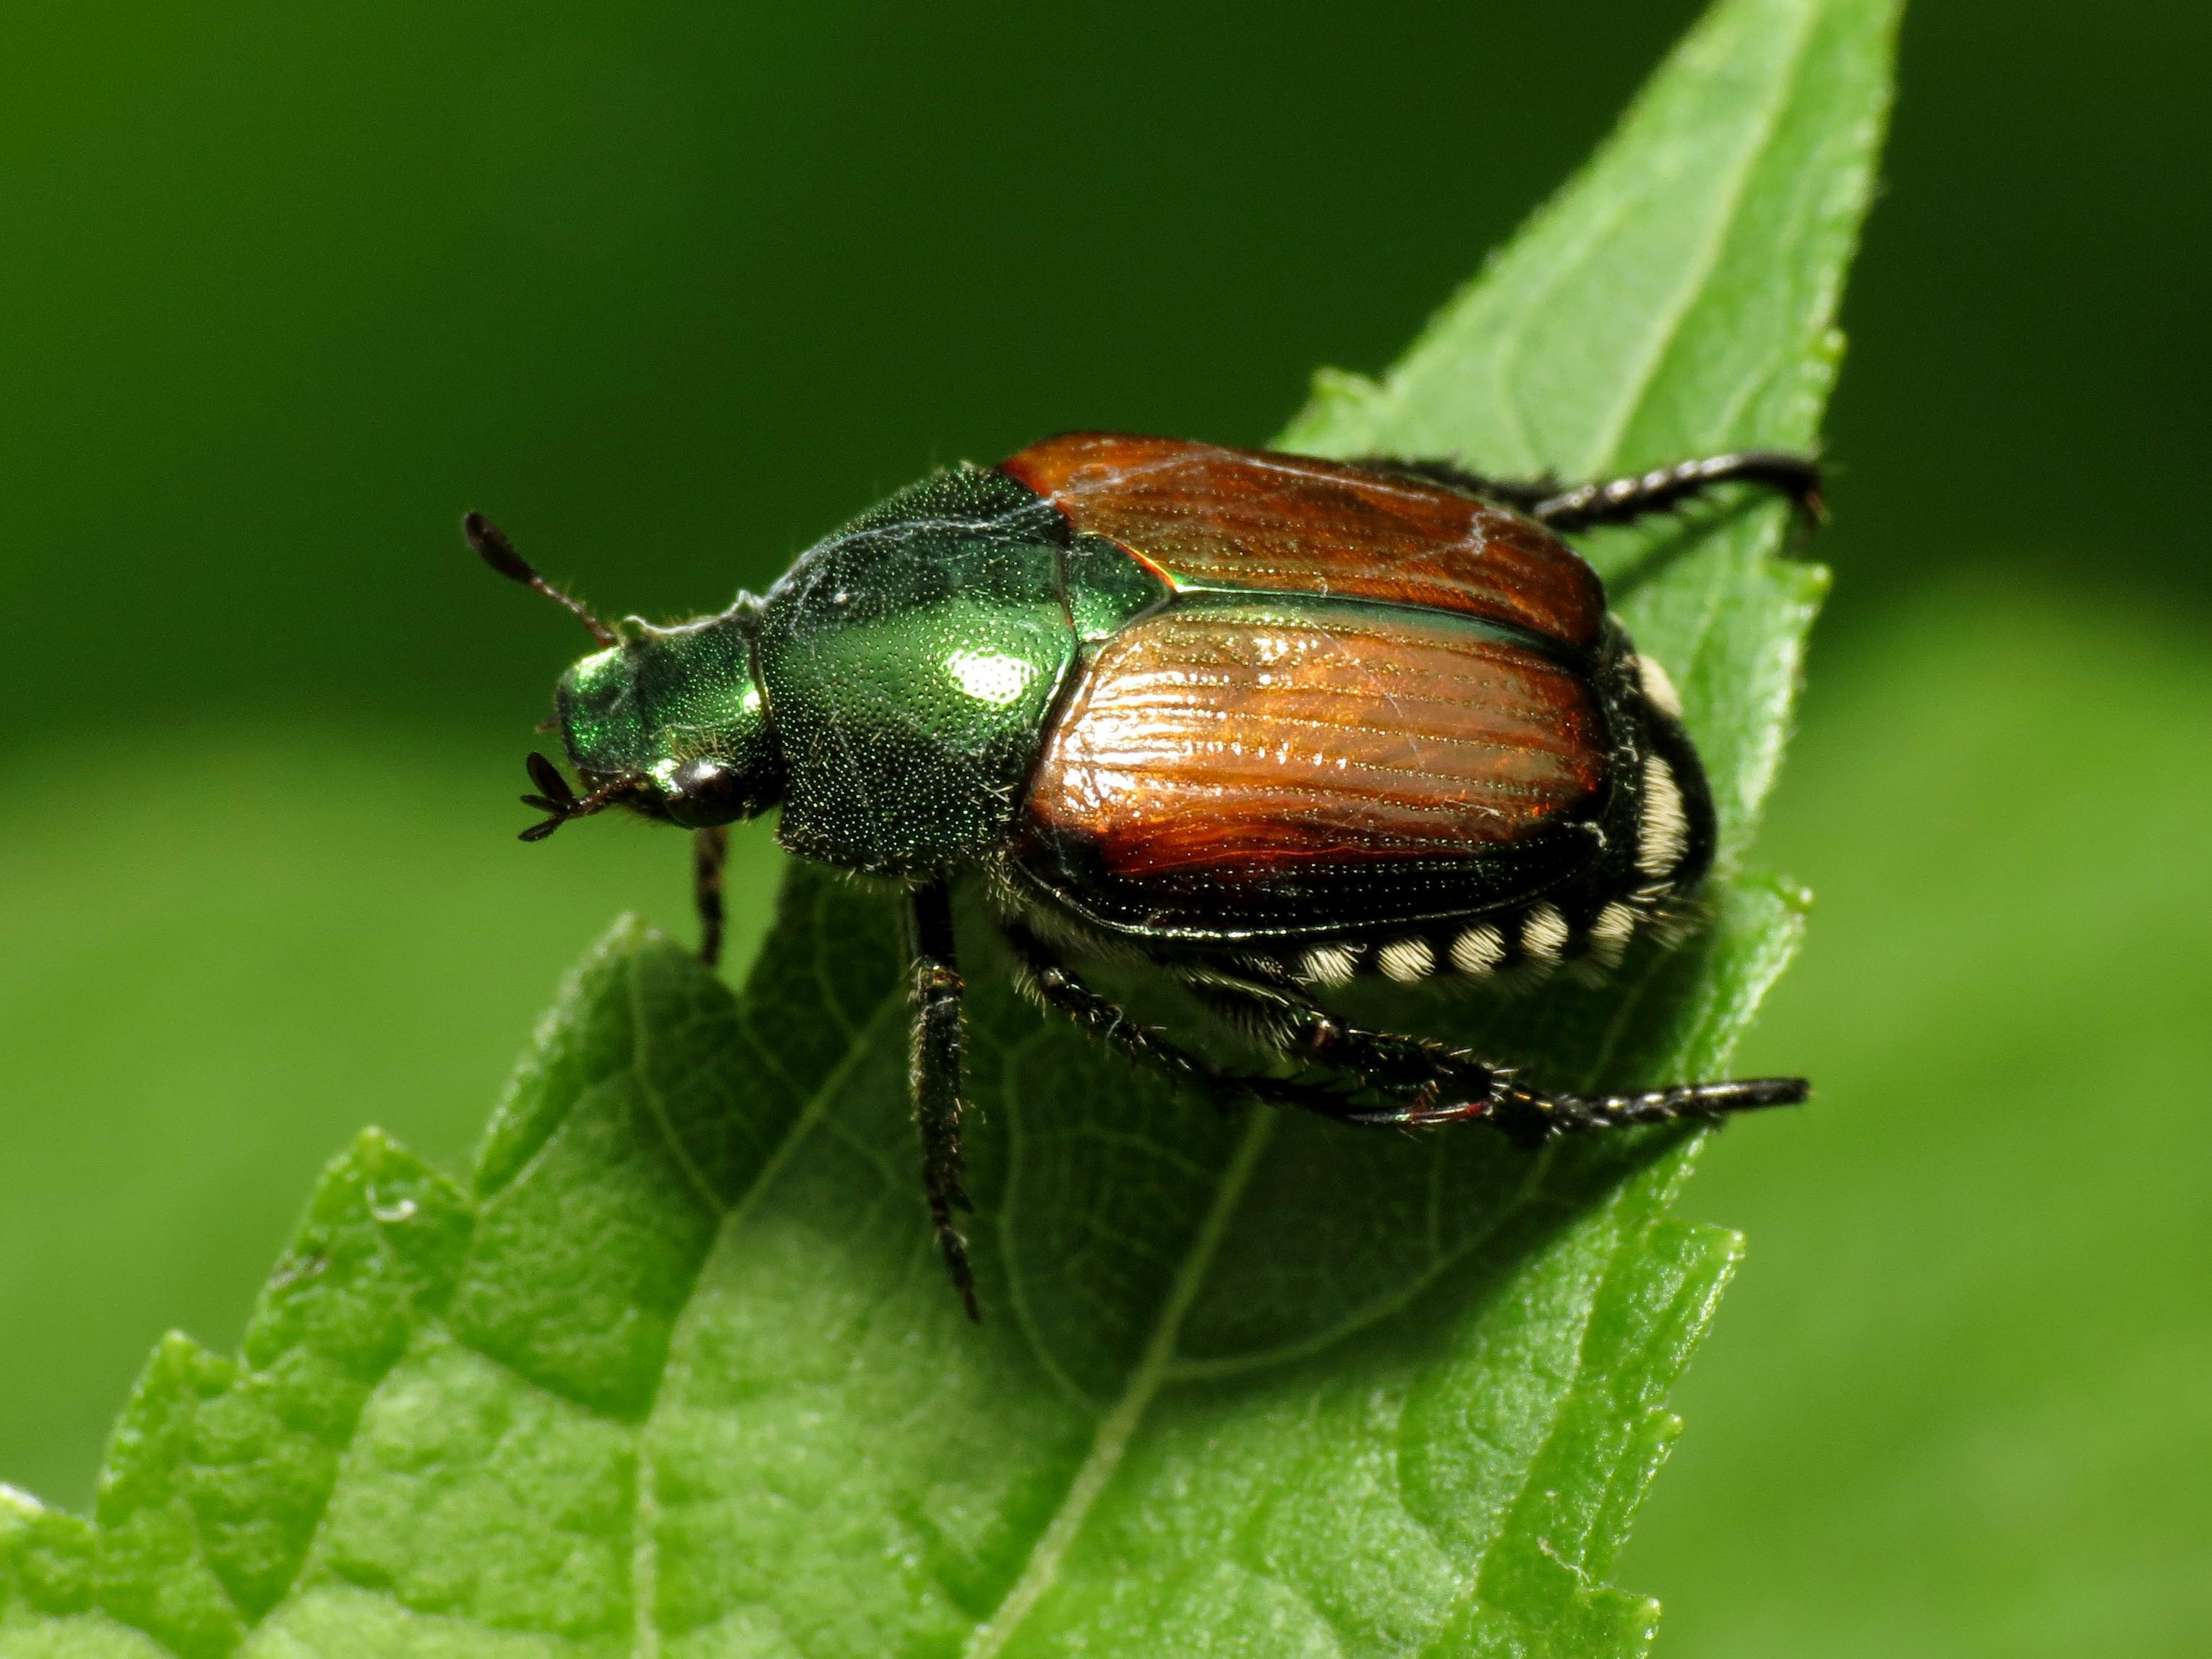 close up of a Japanese Beatle on a green leaf